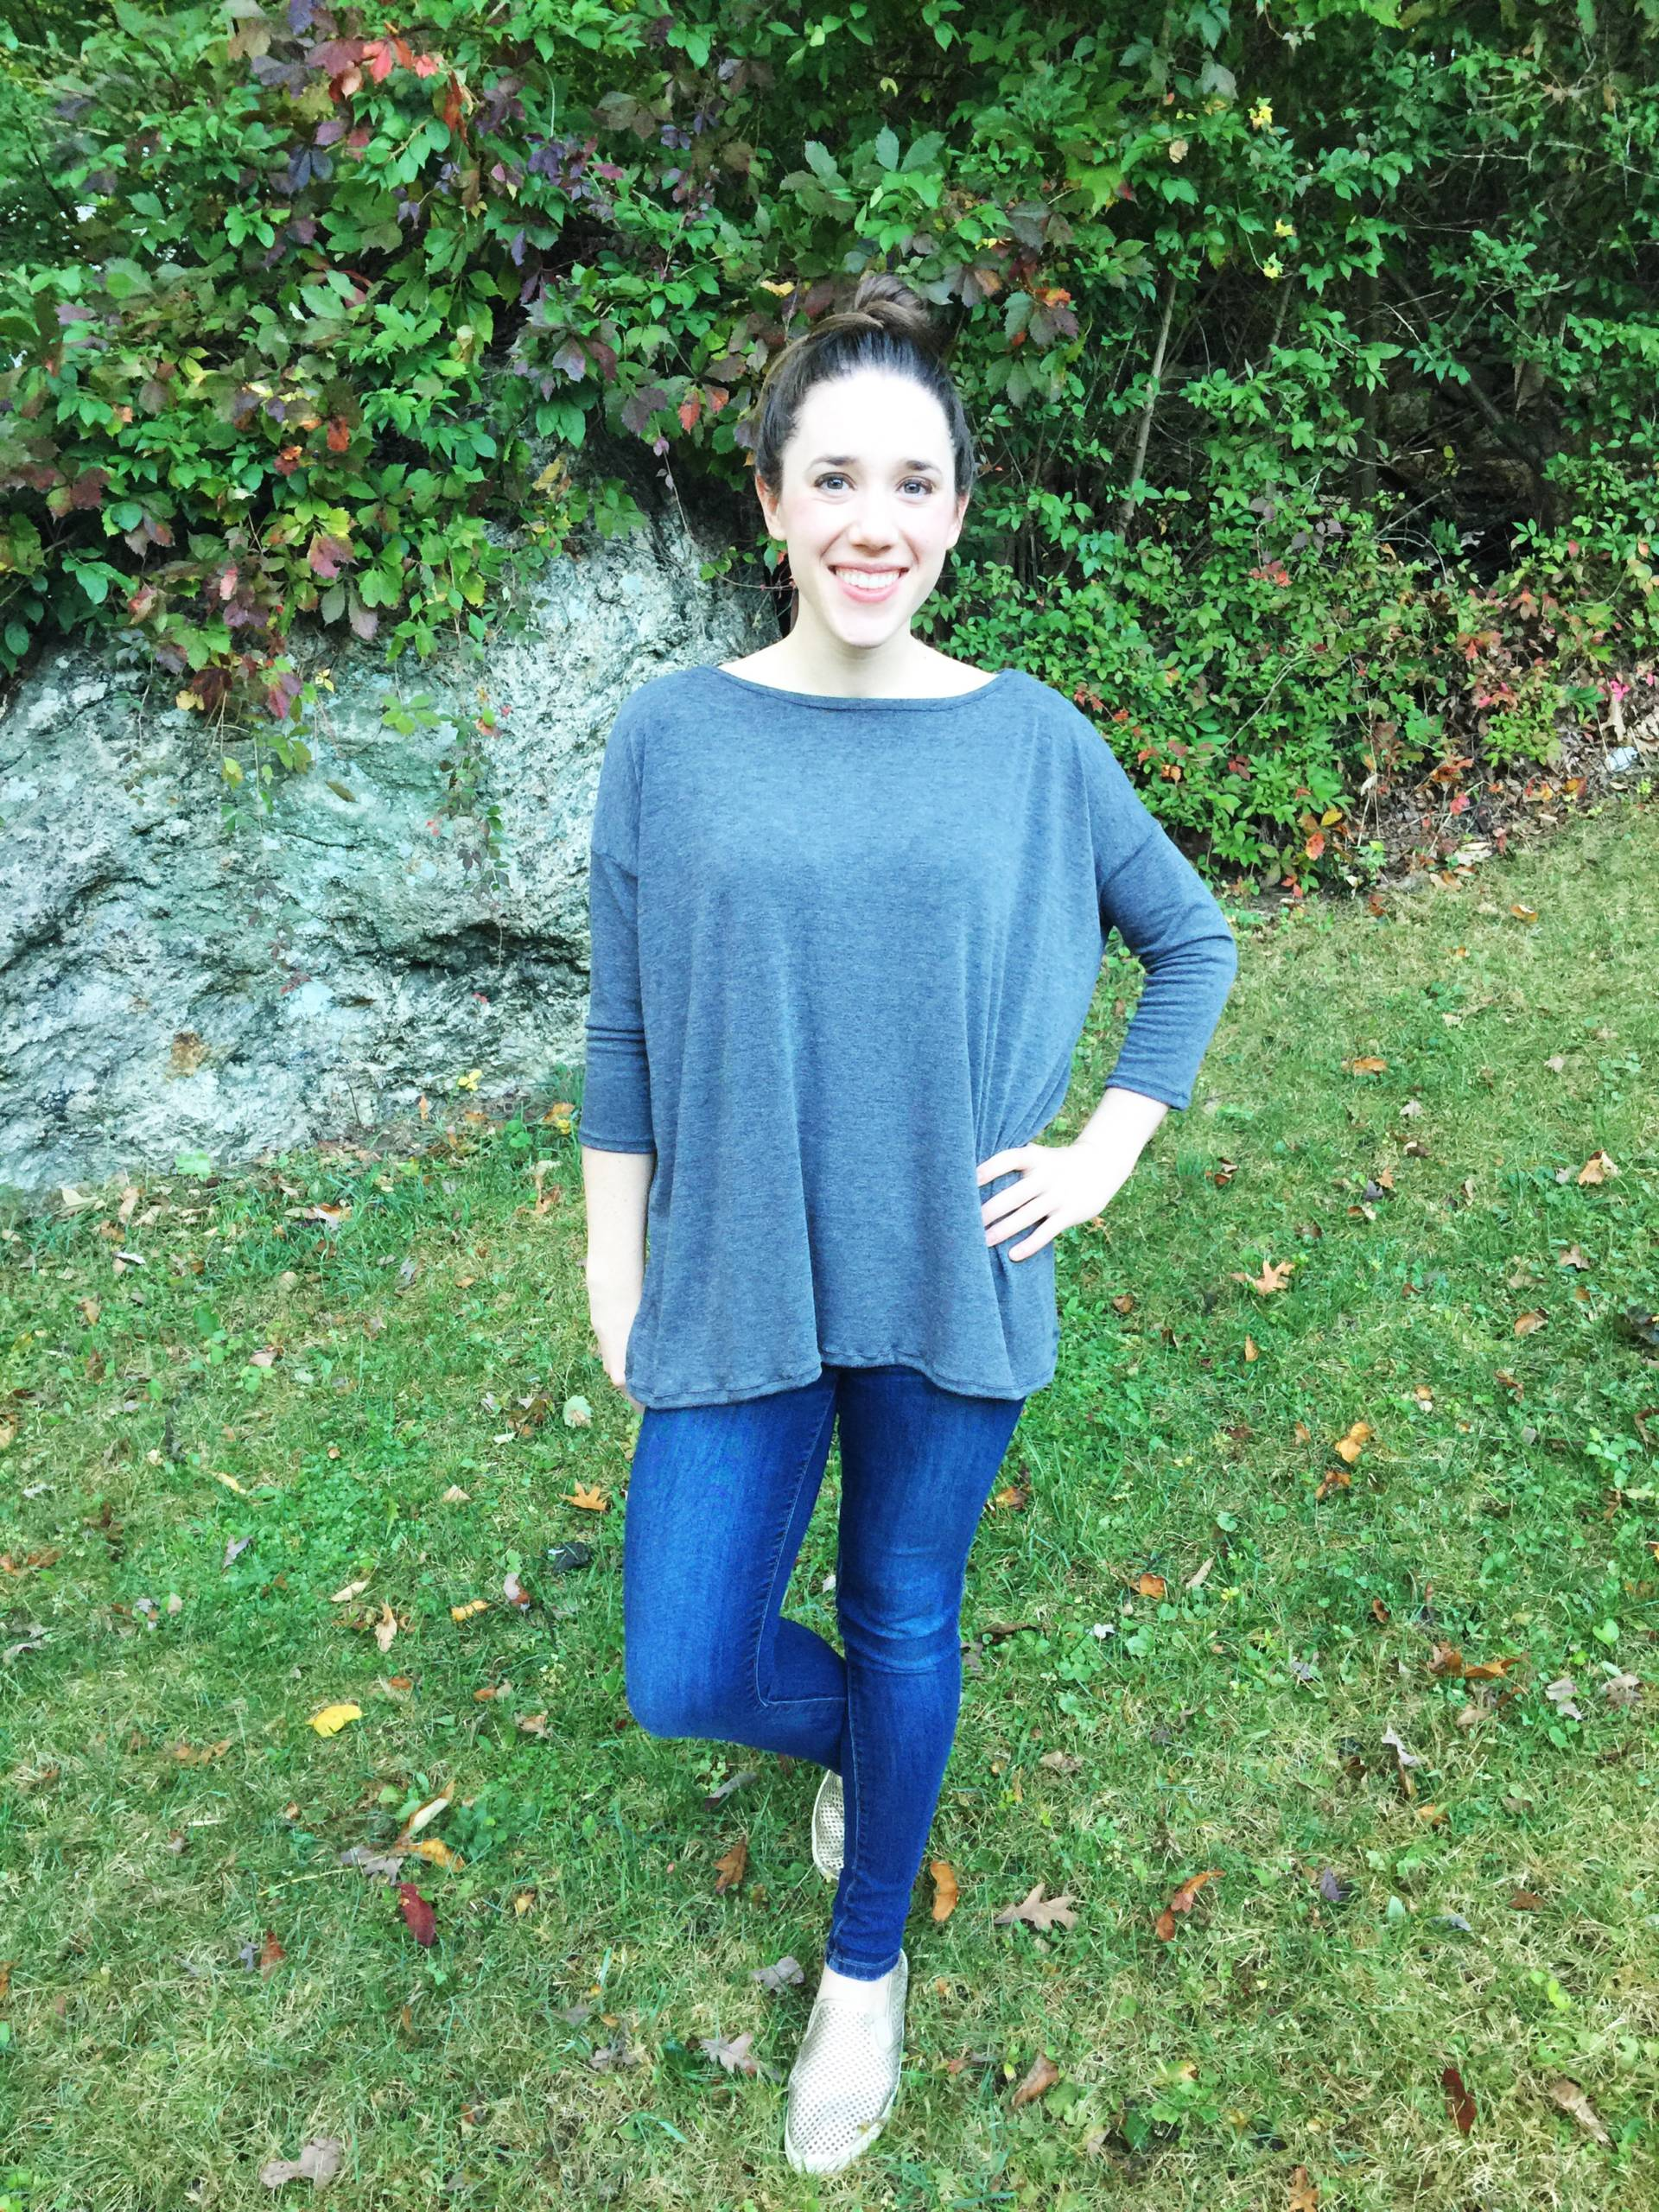 Sewing with Knits: Great FREE pattern for a sllouchy tee. Super simple and perfect for practicing with knits!